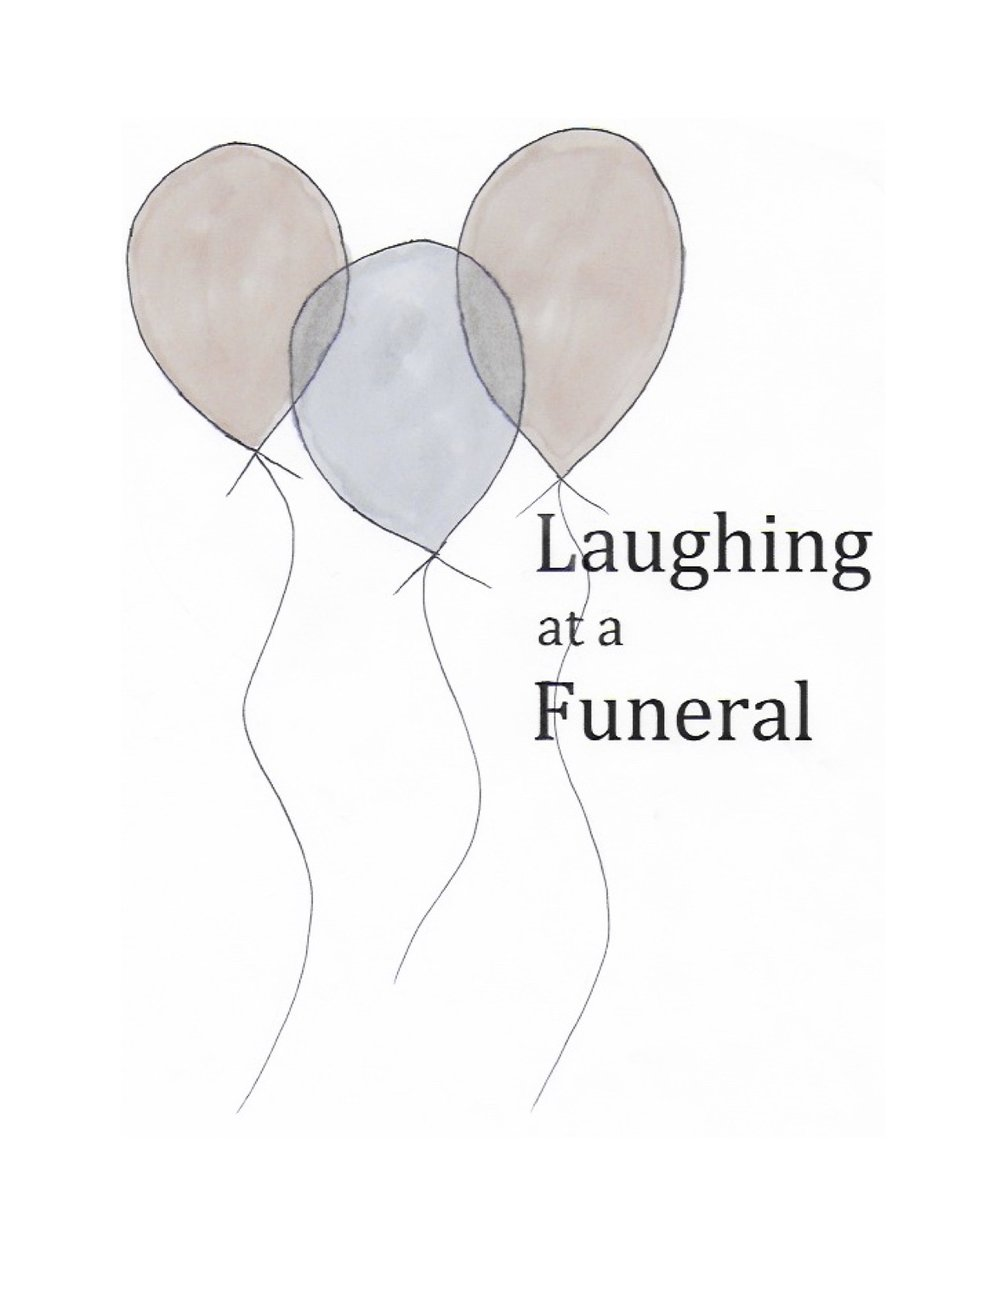 """Laughing at a Funeral - Laughing at a Funeral follows the story of Violet, a senior in high school who discovers a talent in an apathetic ability to tell people bad news. She thrives off of the satisfaction of telling the high and mighty """"popular kids"""" that their cars have been totalled or their boyfriends are cheating on them. However, Violet's own heartbreak has lead her to these drastic and incomprehensible measures, which she begins using as a means to make money. Friends, family, and even strangers pay her to tell others the bad news they can't muster up the confidence to divulge themselves.This makes her happy, until she meets high school soccer star and class president Arlen James, her complete opposite. He is nice, friendly, likeable and involved in more lighthearted activities than she is. Having him as her lab partner changes her perspective in ways she never could have thought or is even comfortable with. Between him and her erratic friend Dio (chocolate addict and misinterpreted 'crazy person') Violet is being torn into the two halves of her personality.Does the view she has of herself—cynical beyond all repair—really reflect who she is? Is her sympathy towards Arlen a show of weakness? Or is life not so black and white after all? Violent begins to realize that high school is the worst time for a girl to uncover who she really is as a person."""